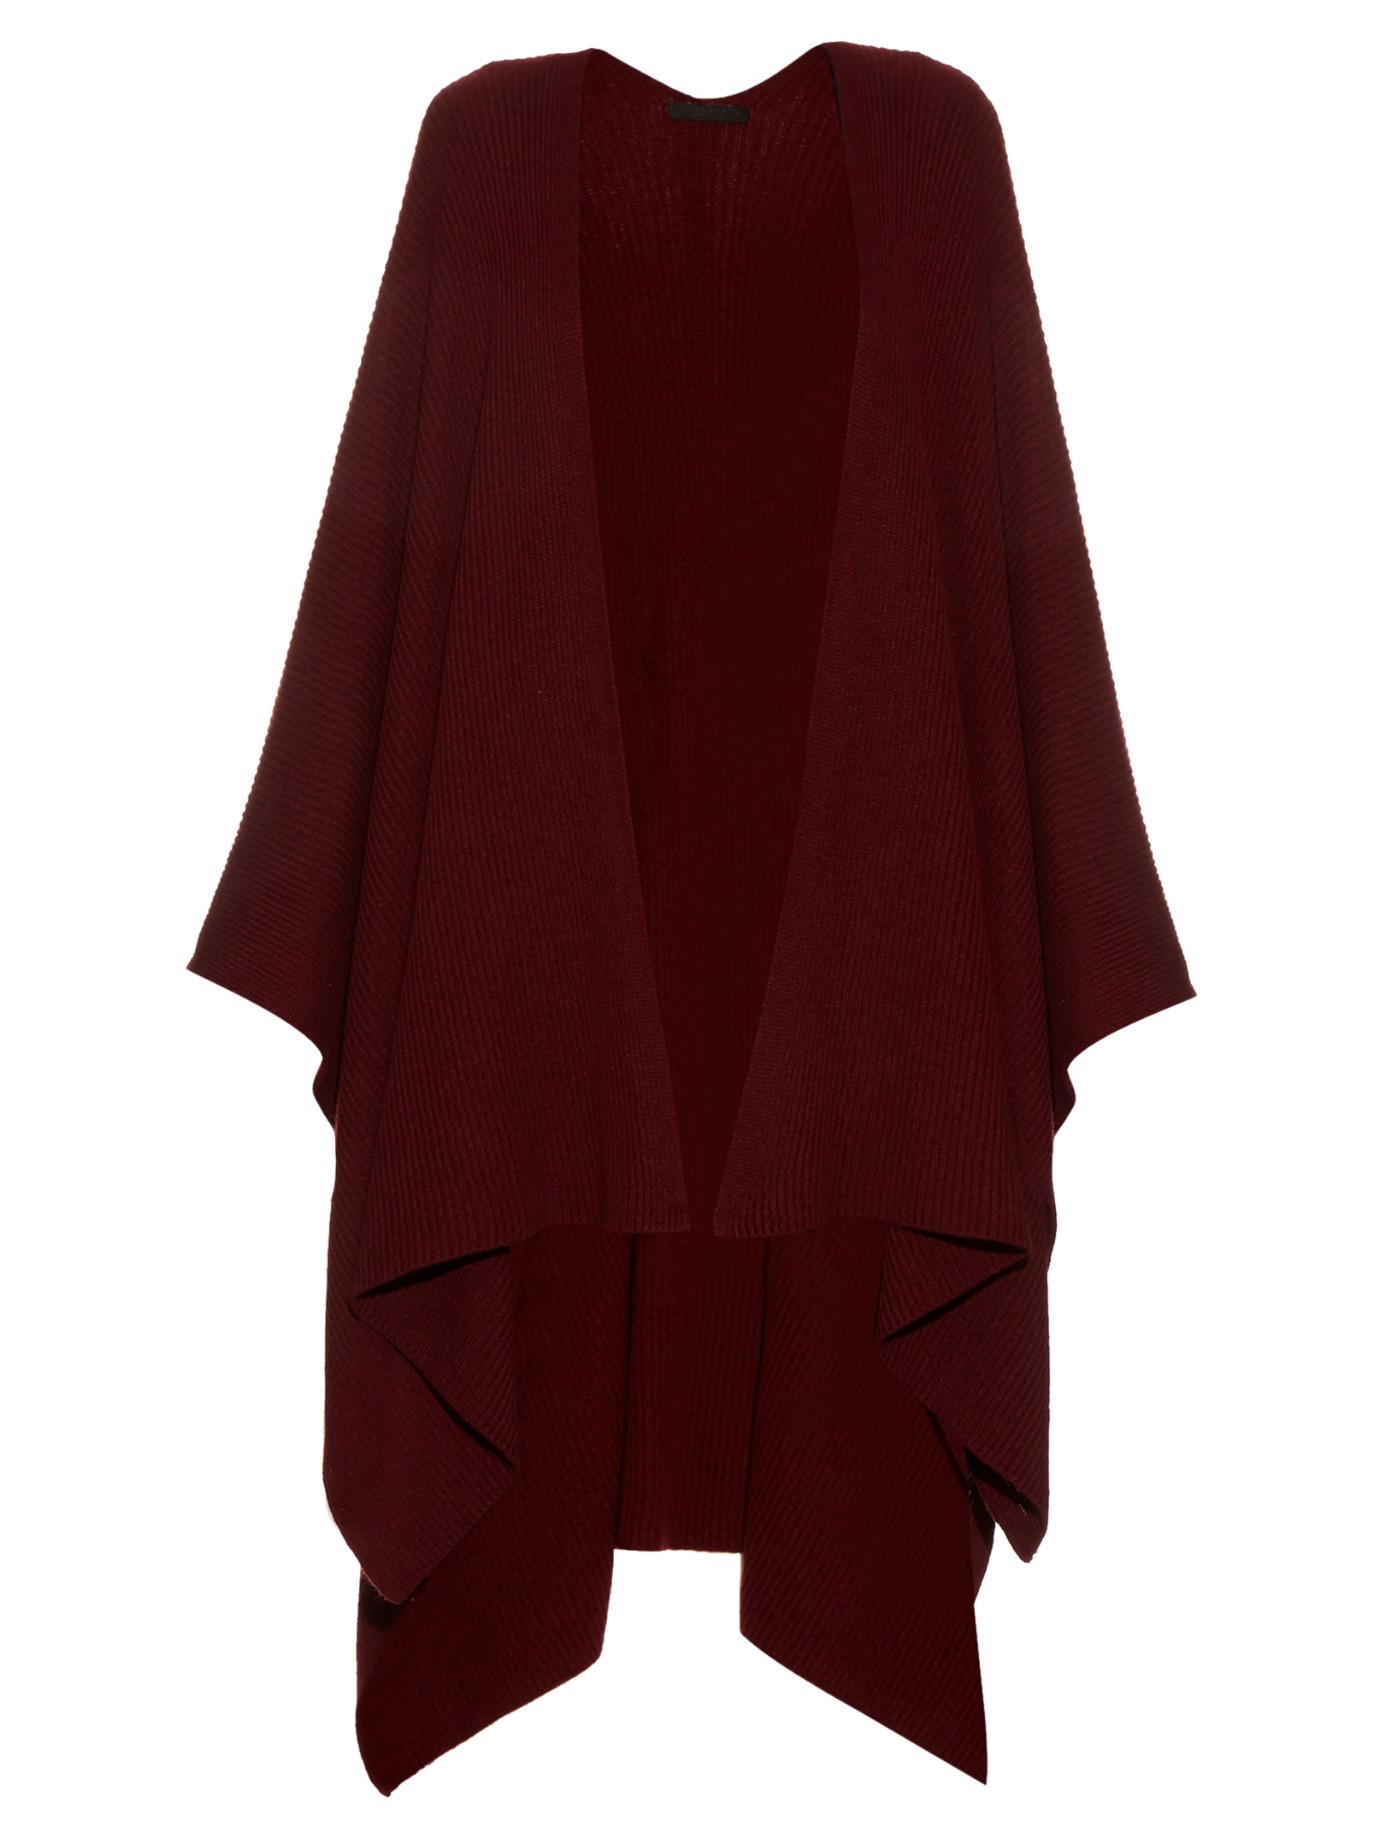 CASUAL CHIC: THE ROW Cappeto cashmere cape